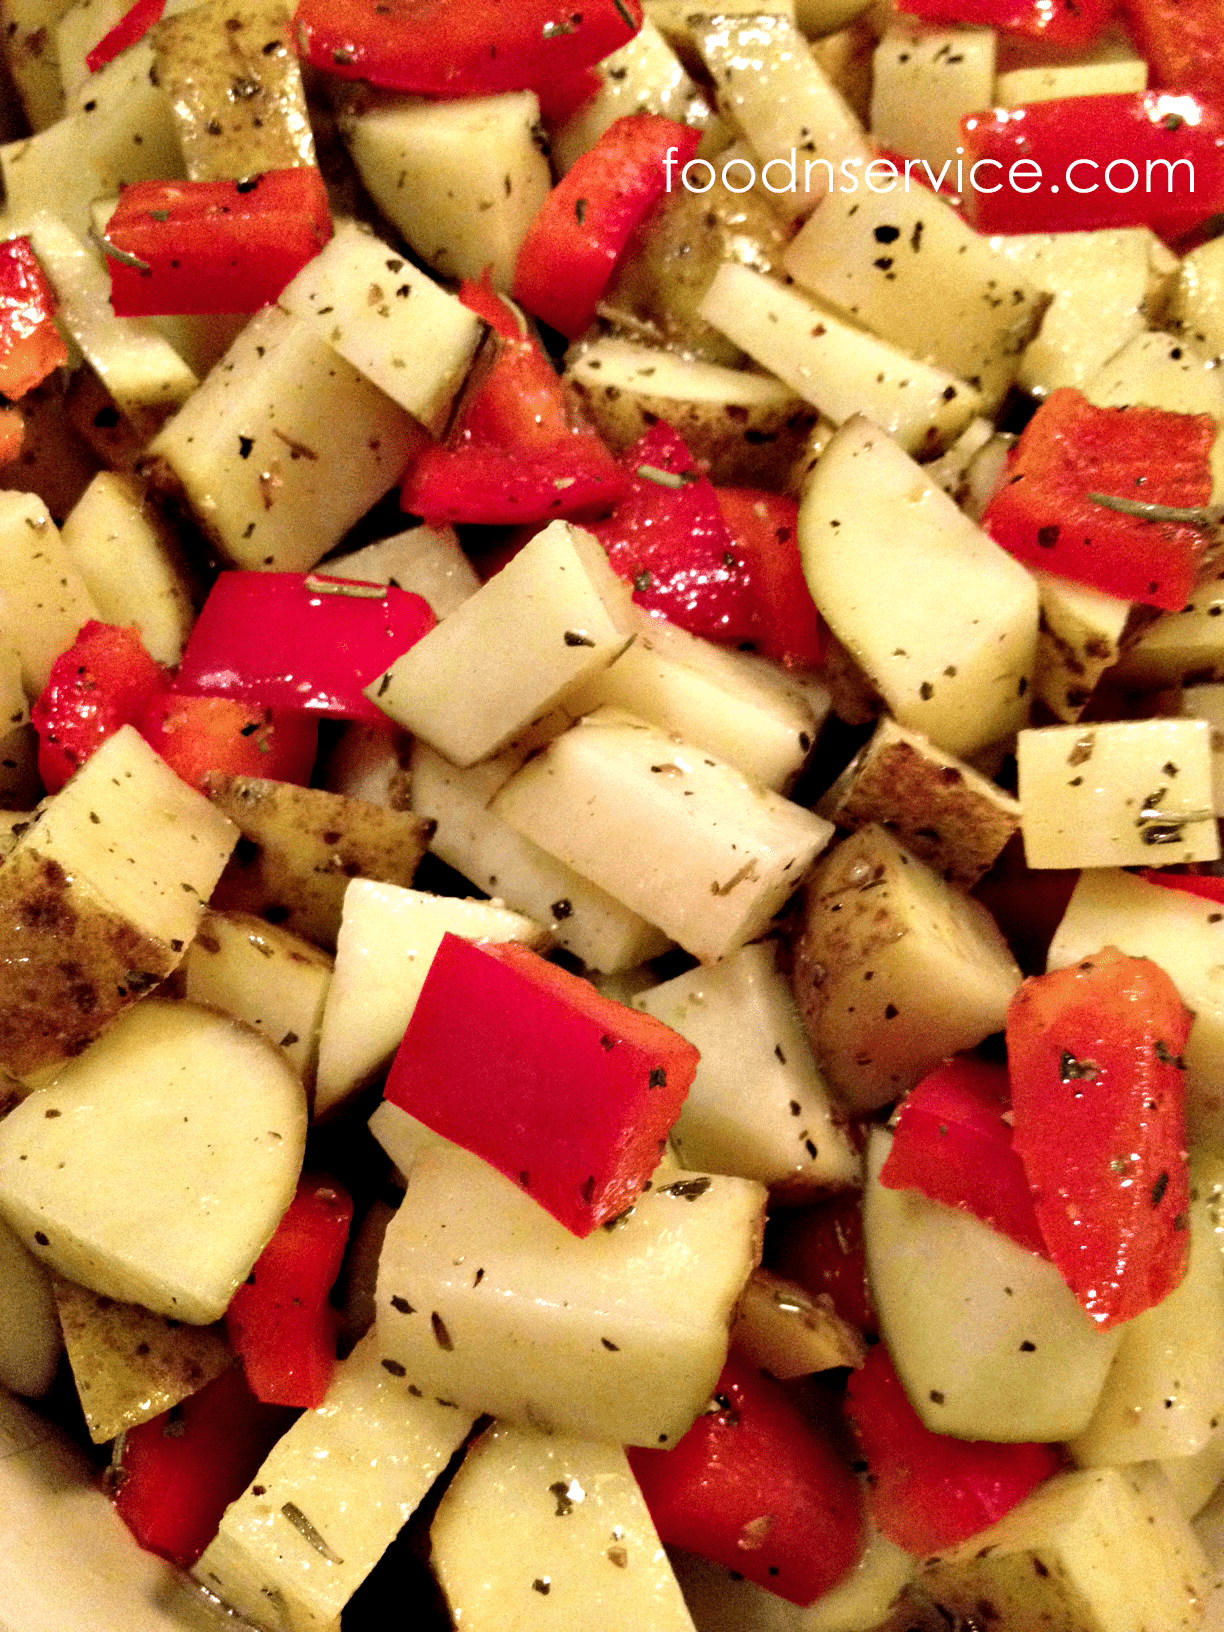 Oven Roasted Potatoes and Peppers Recipe!